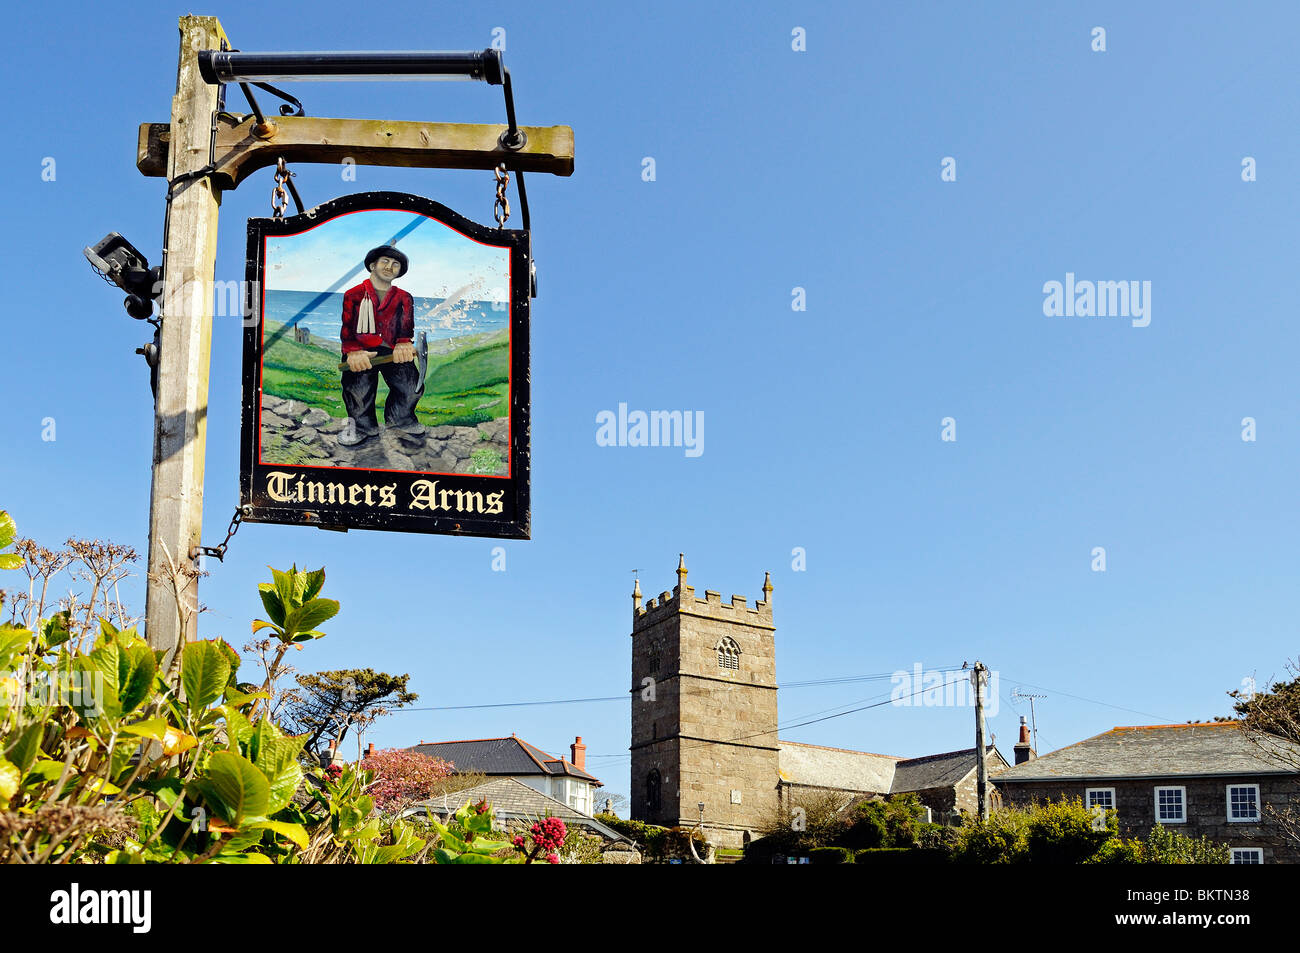 the ' tinners arms ' pub sign in the village of zennor, cornwall, uk - Stock Image